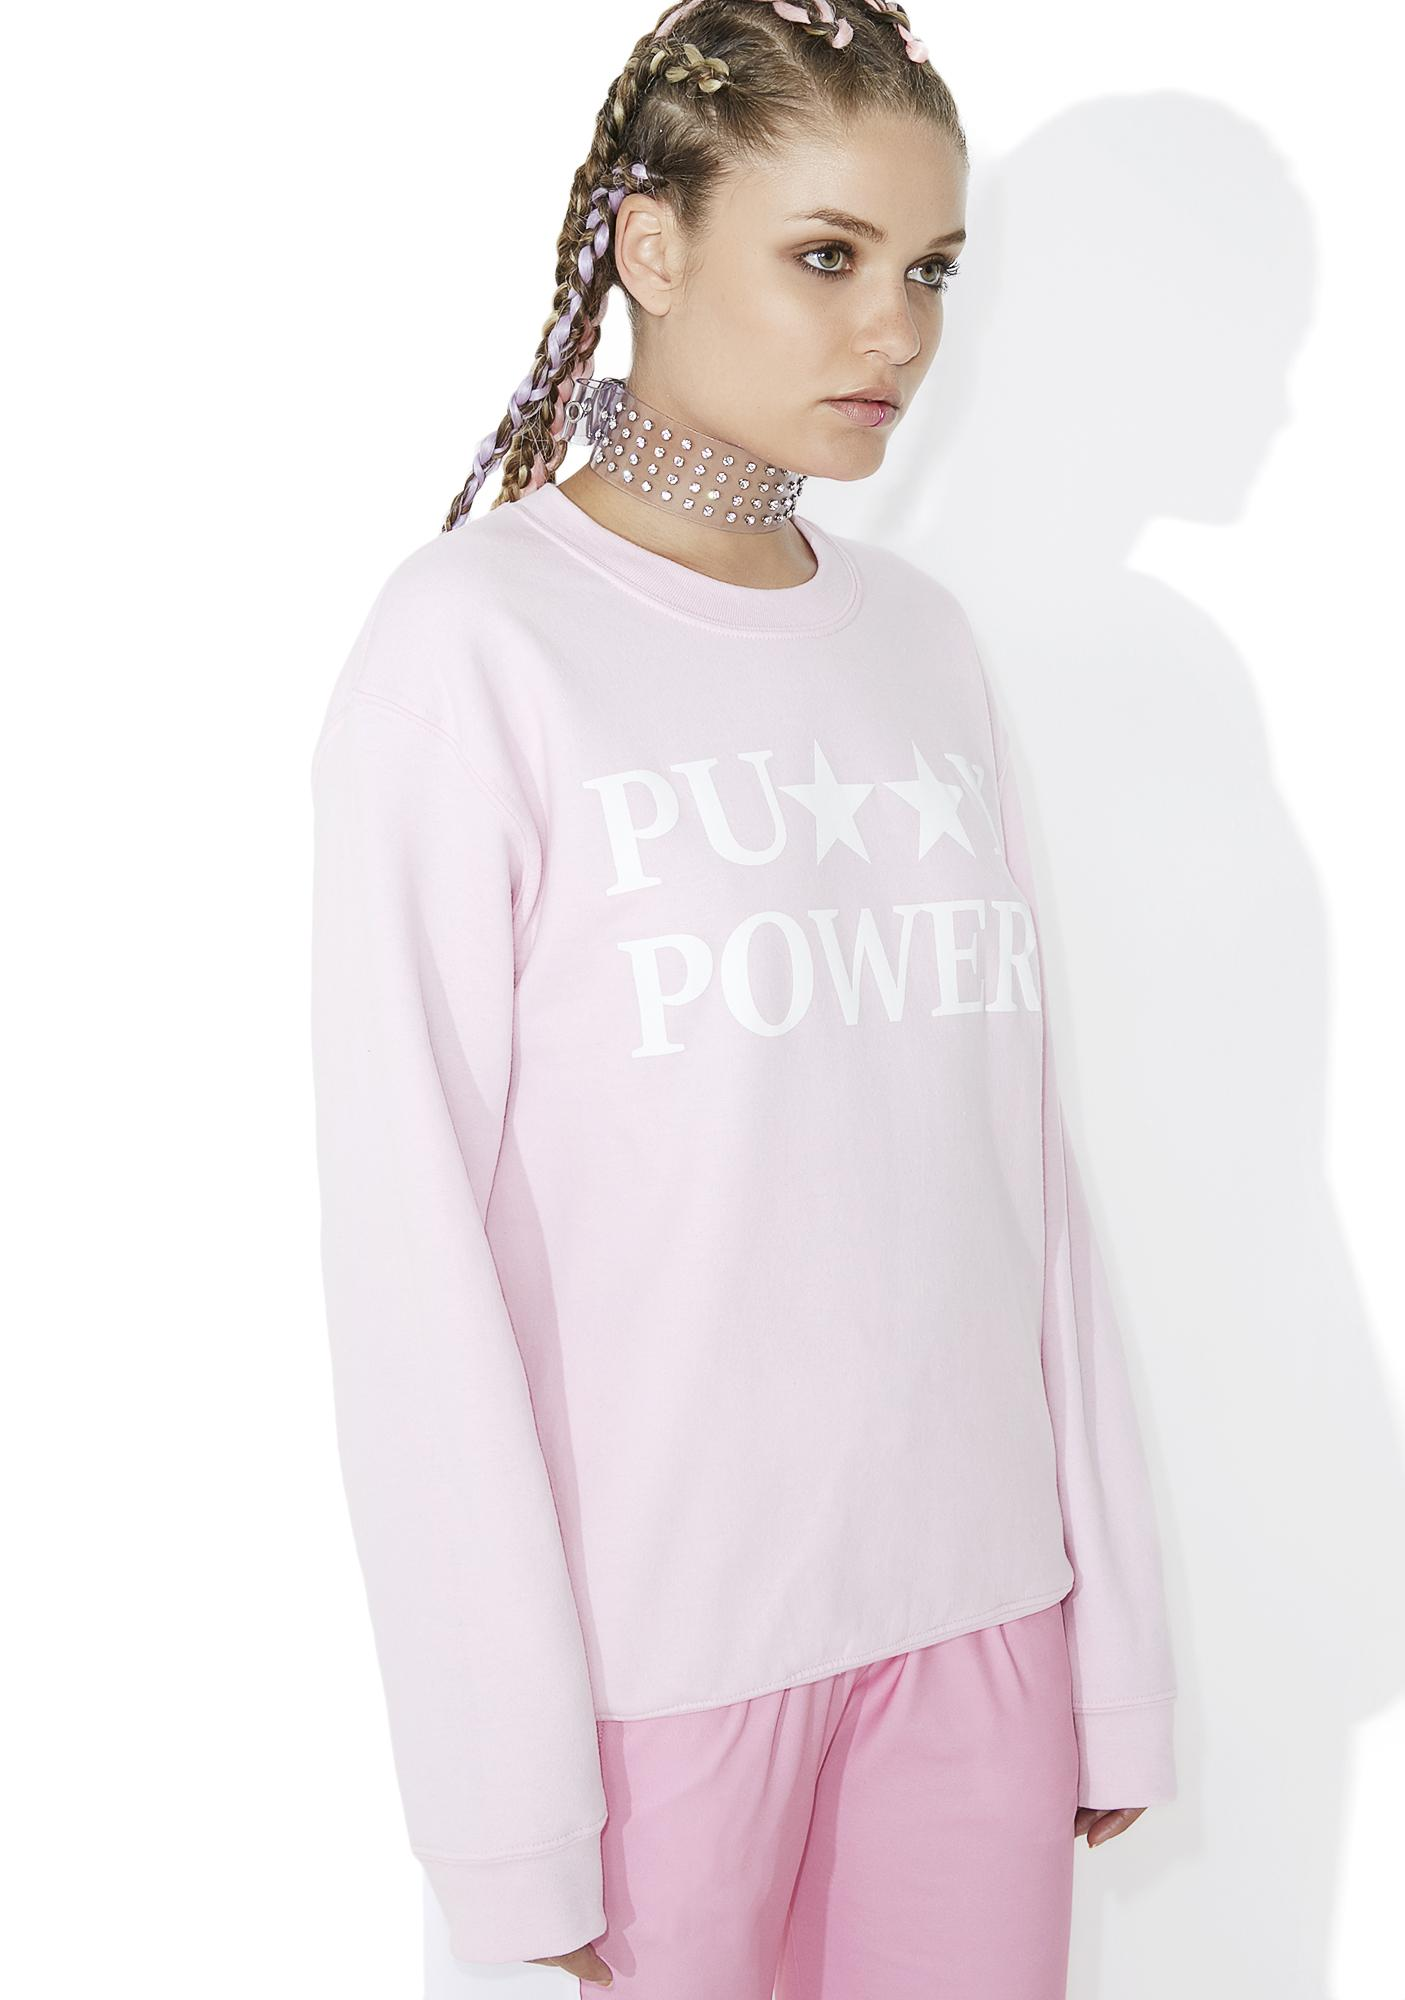 Cross Colours Pu**y Power Sweatshirt